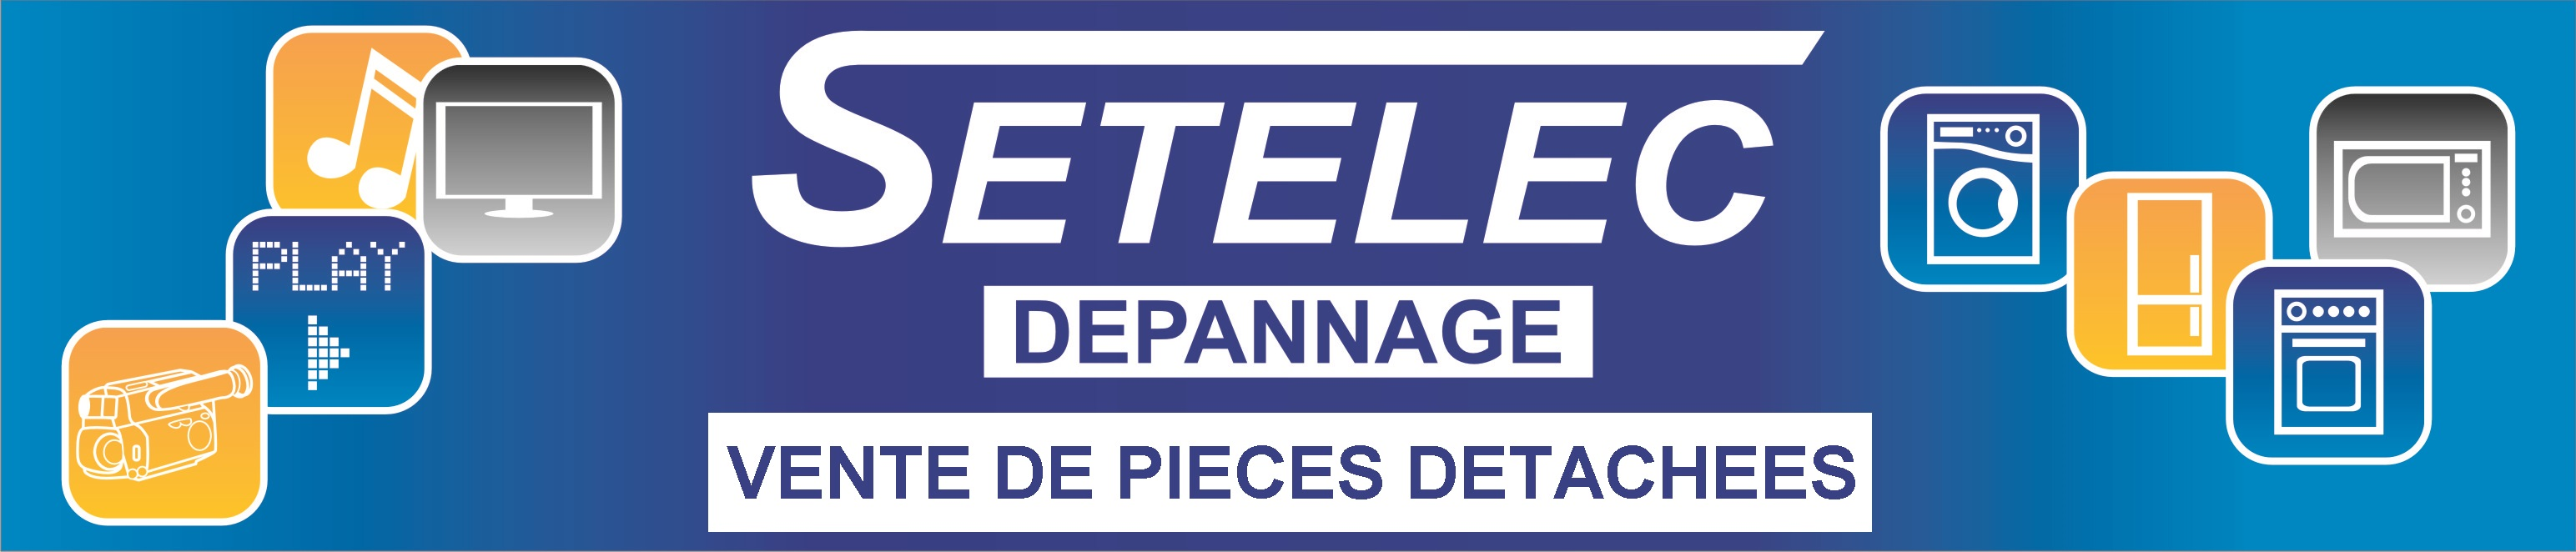 setelec-shop.fr